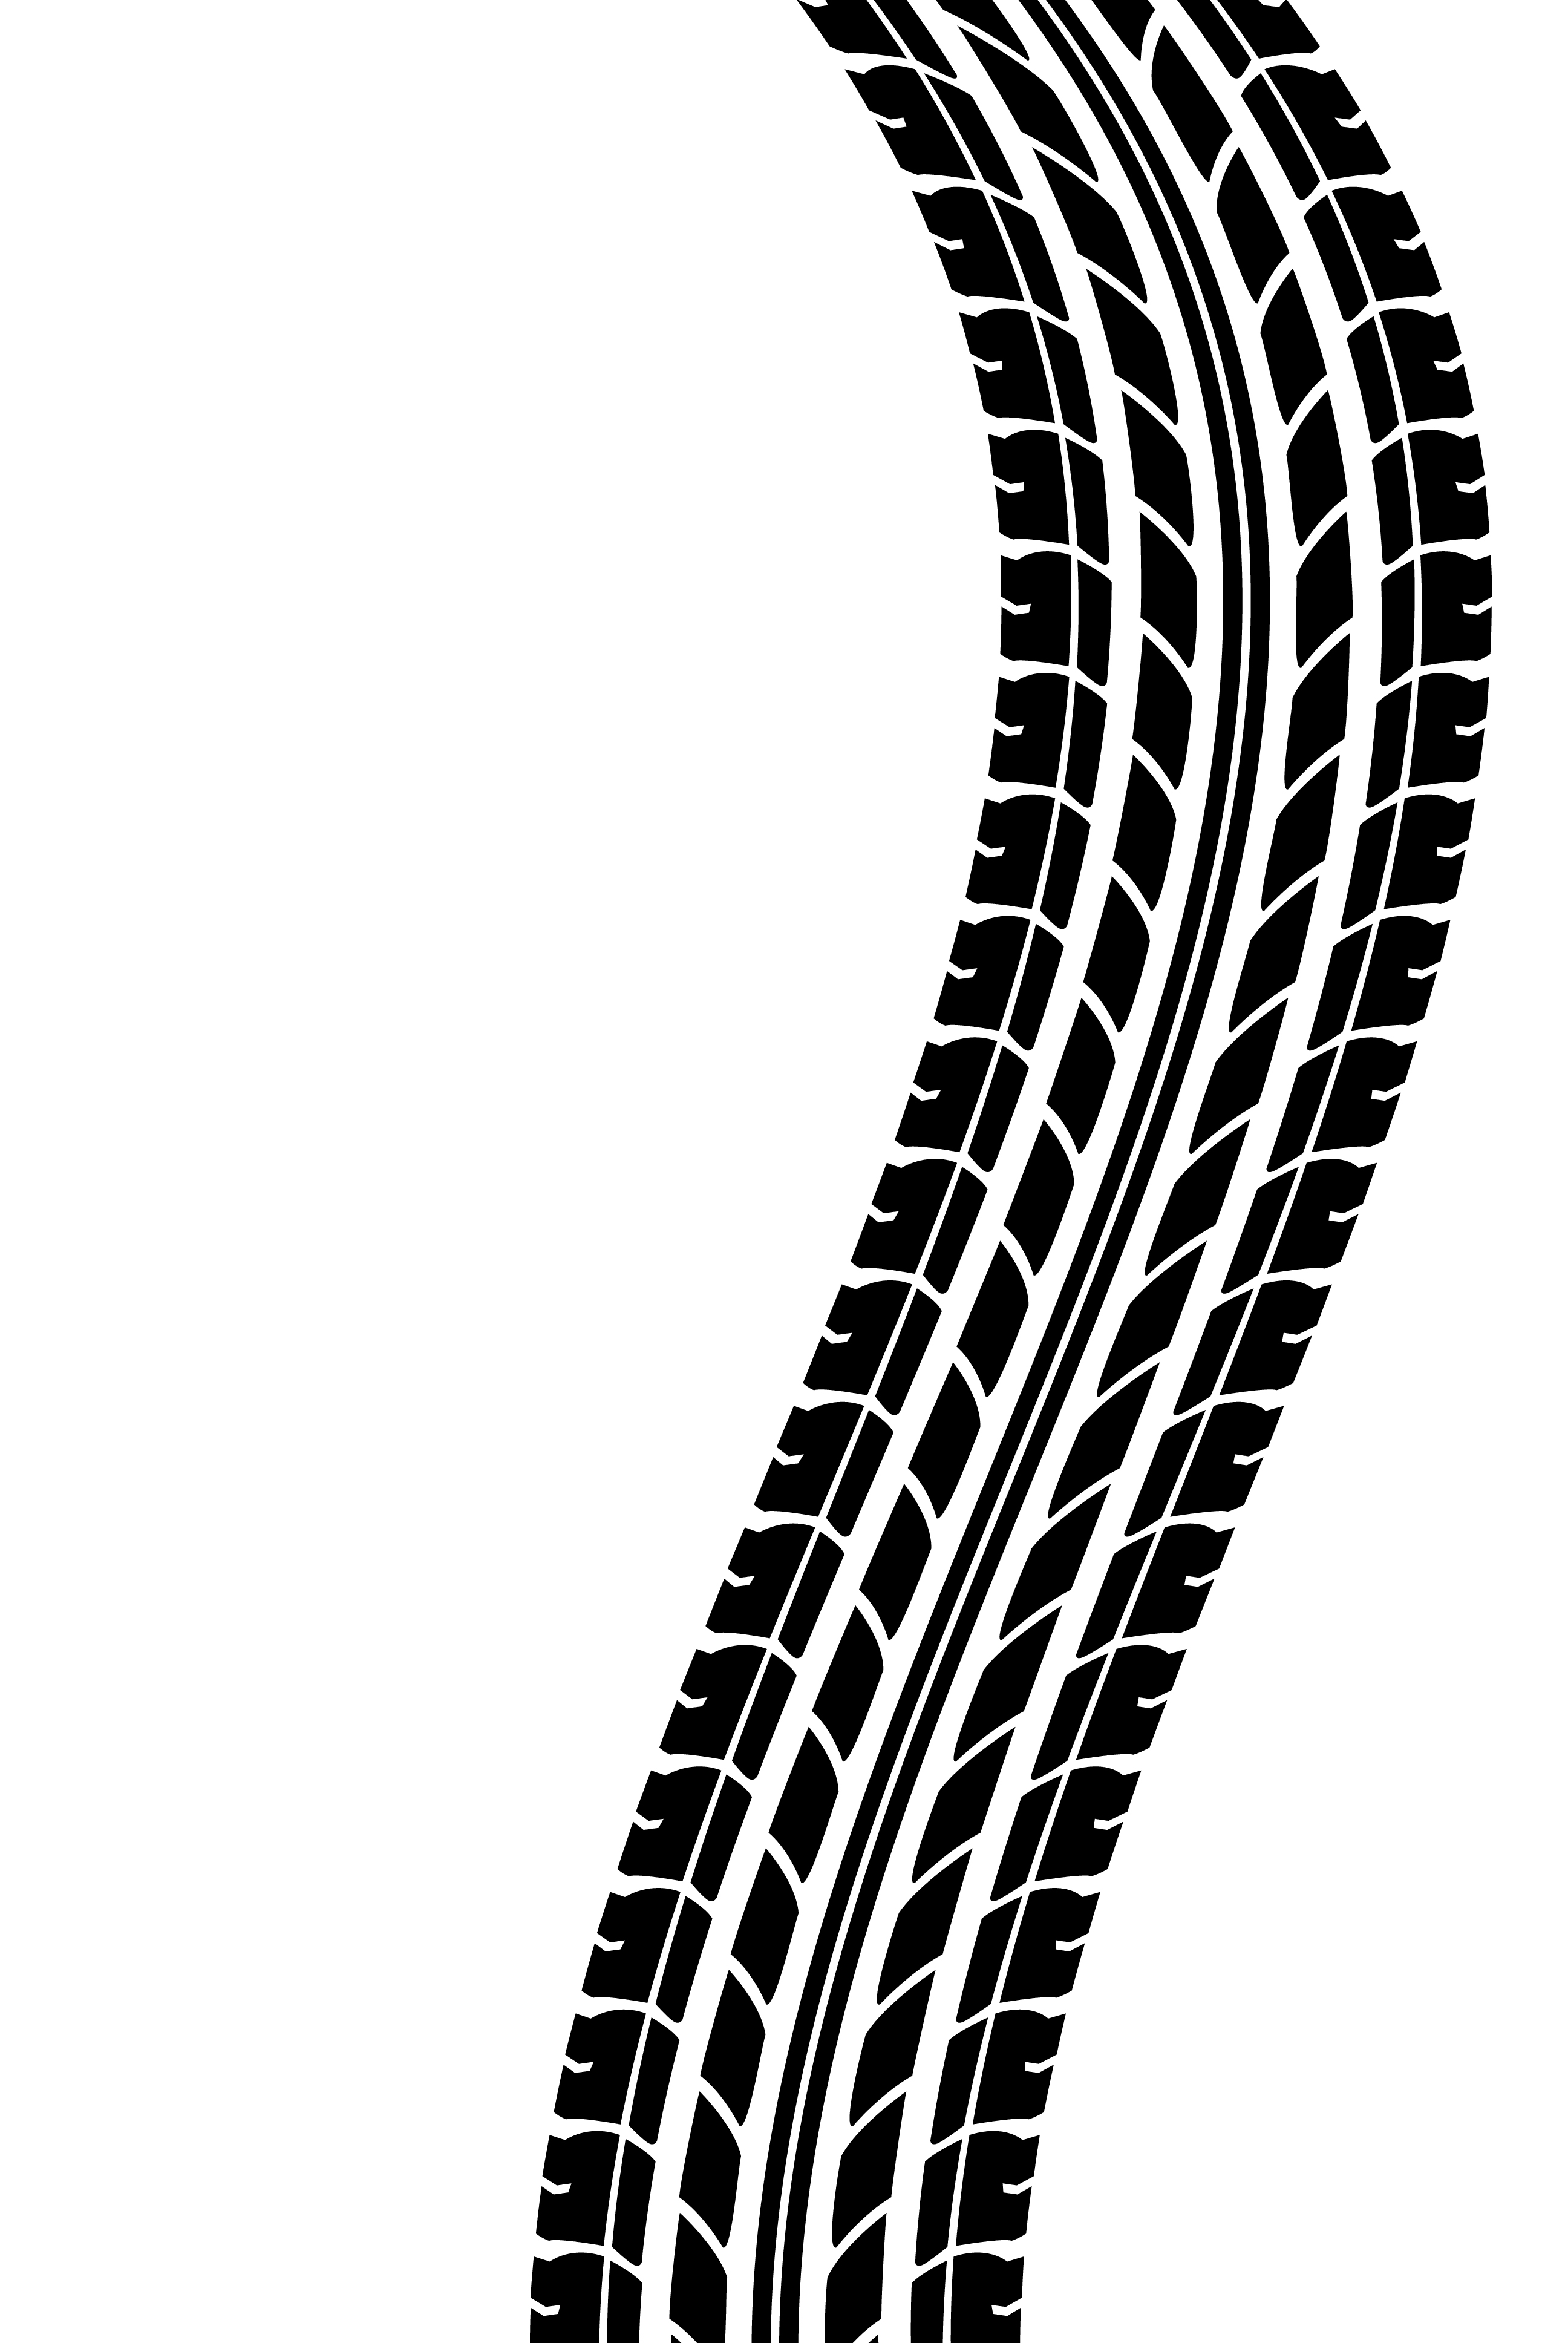 tire grip clipart clipground